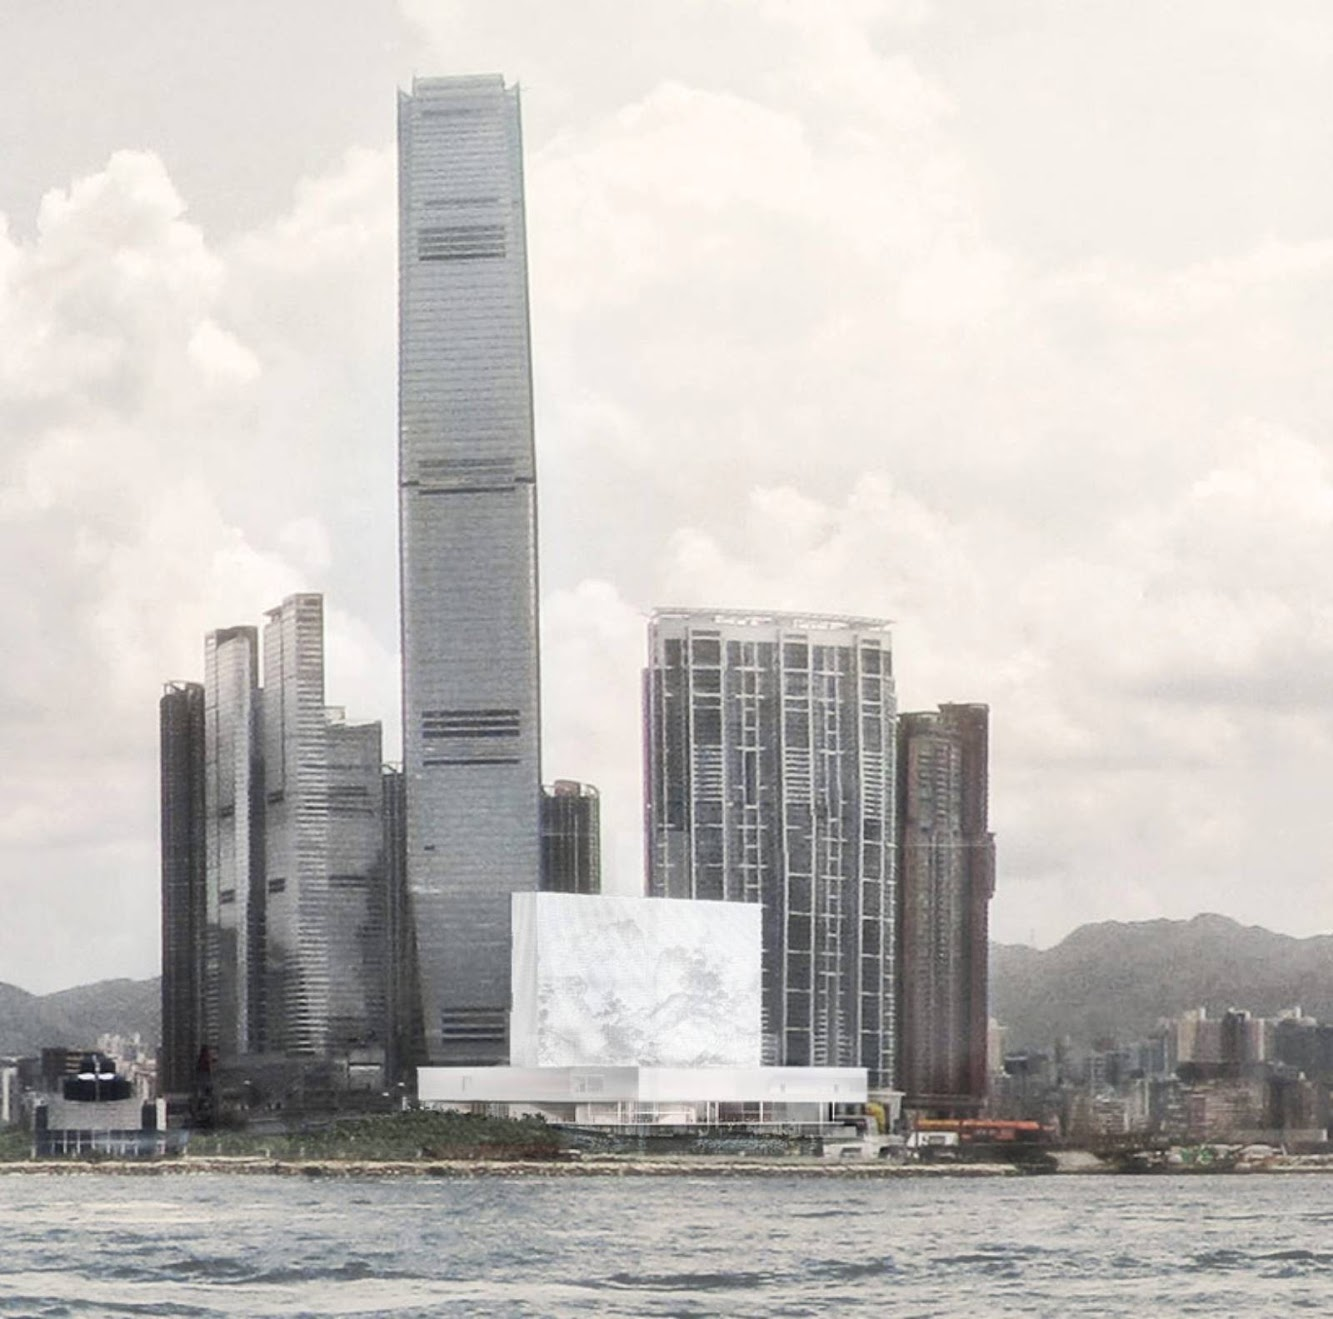 02-Herzog-de-Meuron-win-competition-to-design-M+